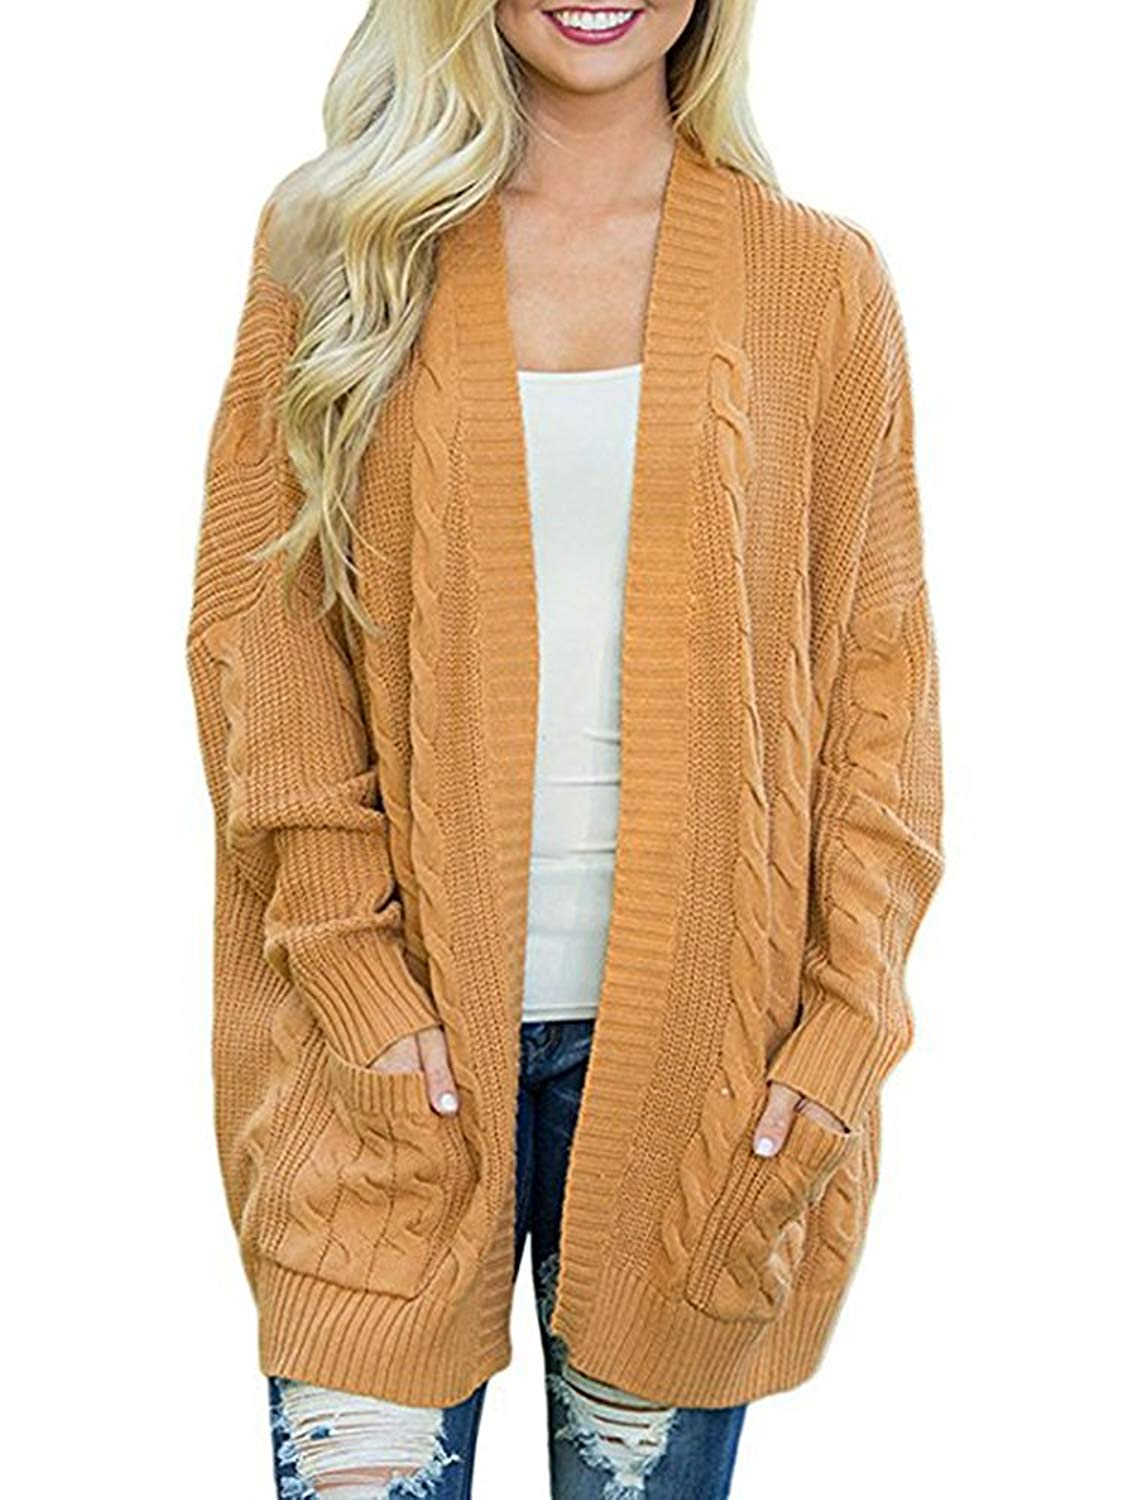 Haloumoning Womens Oversized Sweaters Fall Long Open Front Chunky Cable Knit Cardigans with Pockets